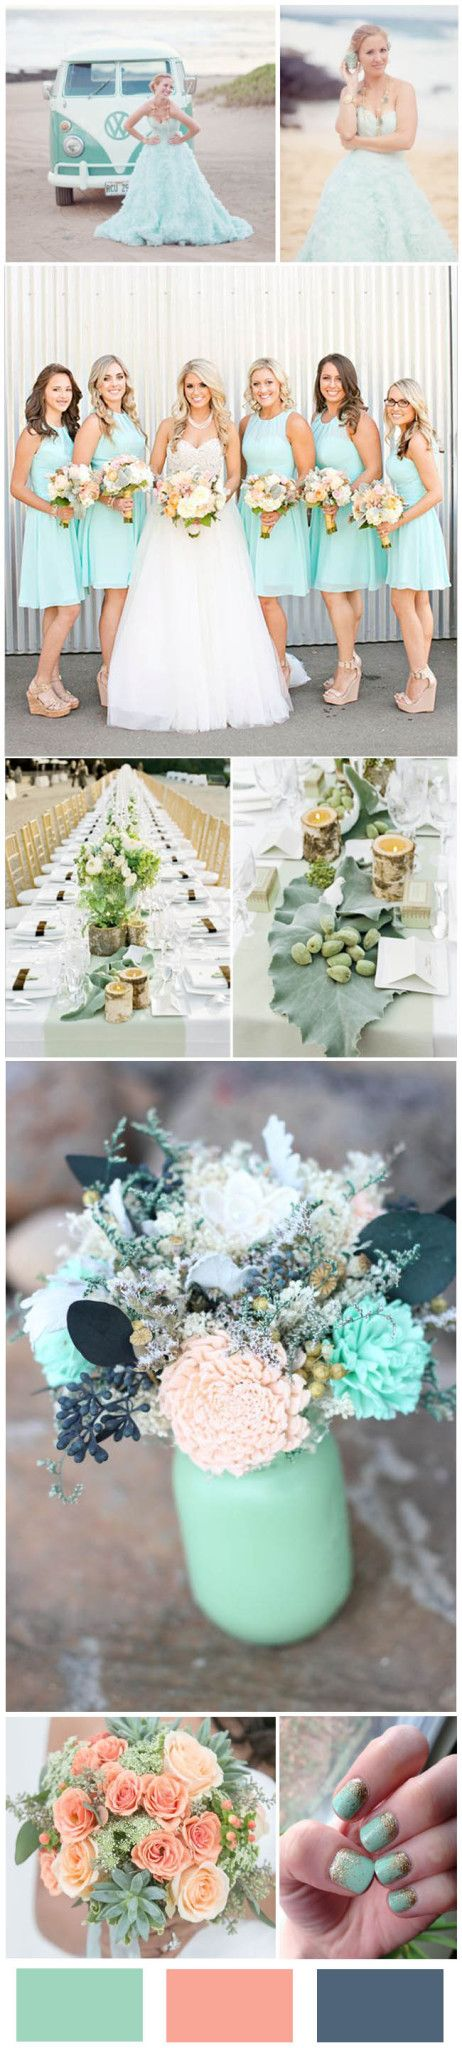 30  Mint Wedding Color Ideas For the Bride to Be   http://www.weddinginclude.com/2016/05/mint-wedding-color-ideas/